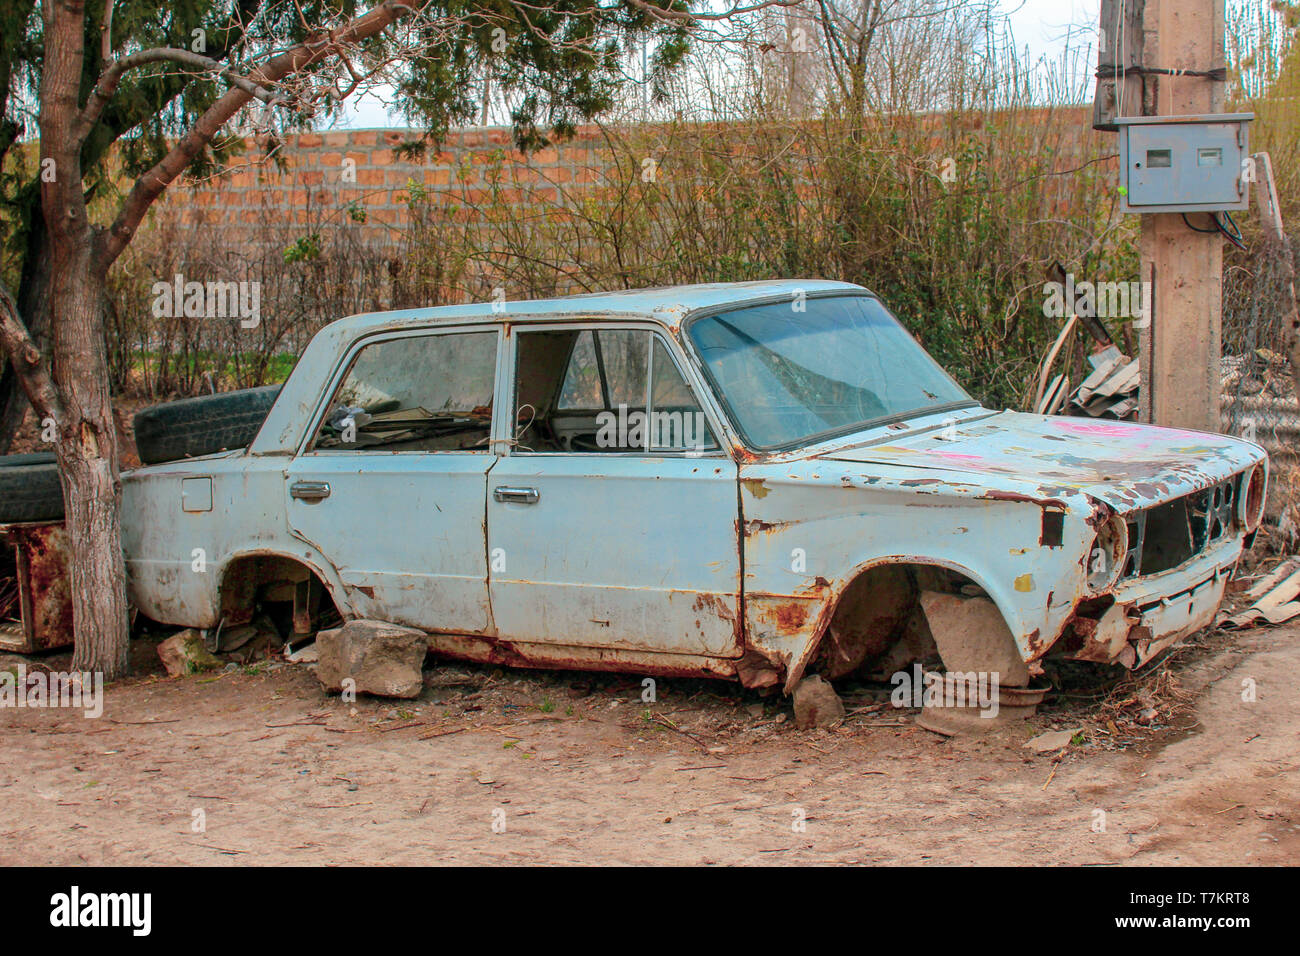 The old, disassembled, rusty and dirty body of the car stands on the outskirts of the city in Armenia. - Stock Image